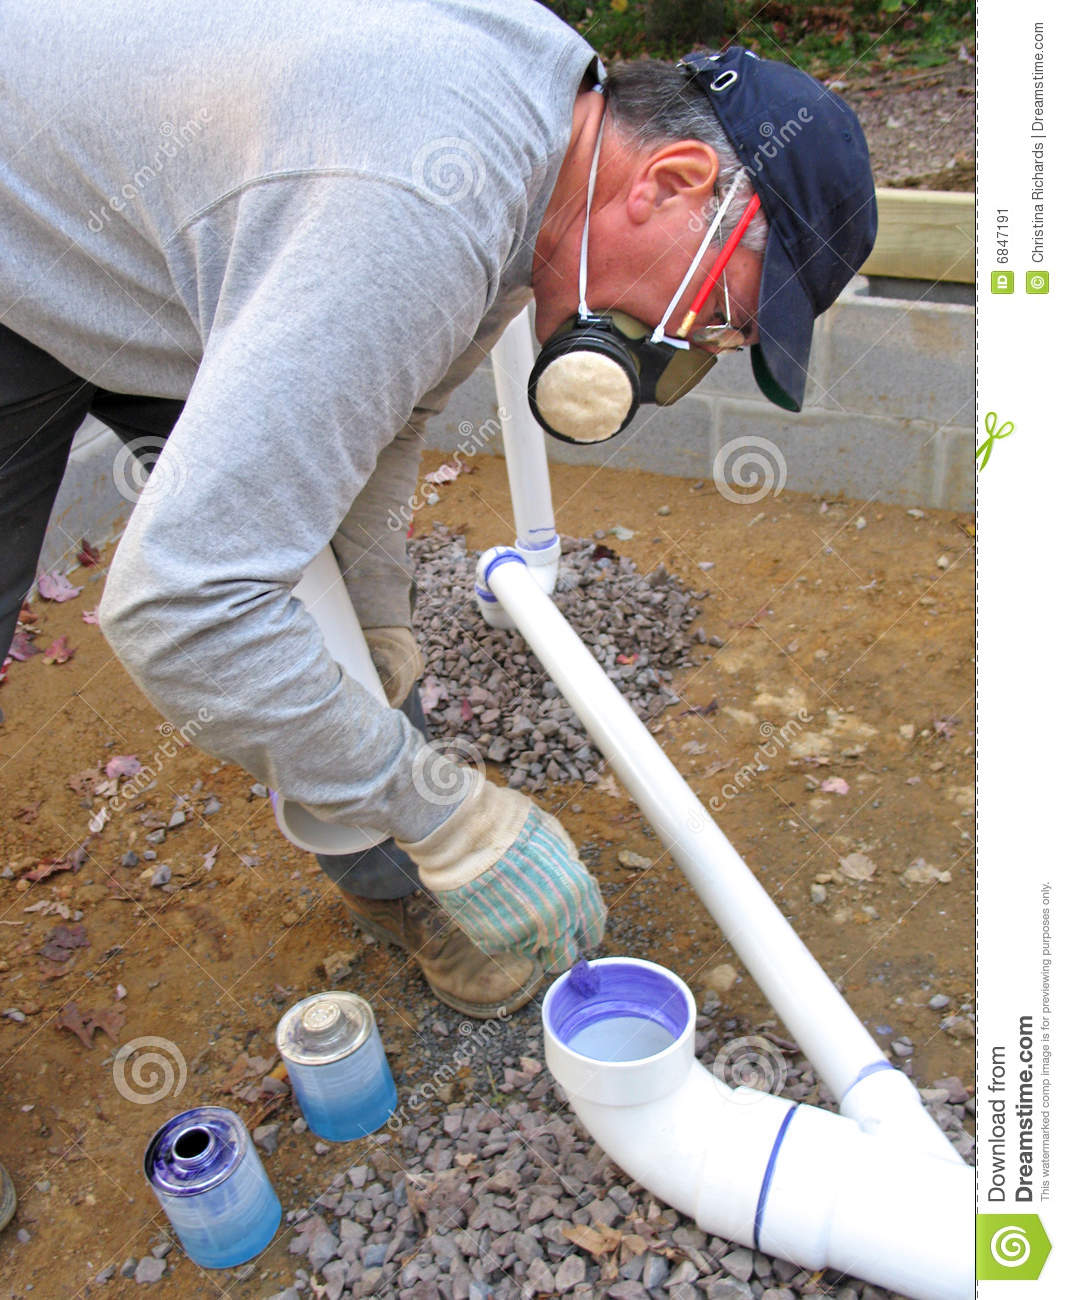 Plumber joining plastic pipes stock image image of odor for Plastic plumbing pipes